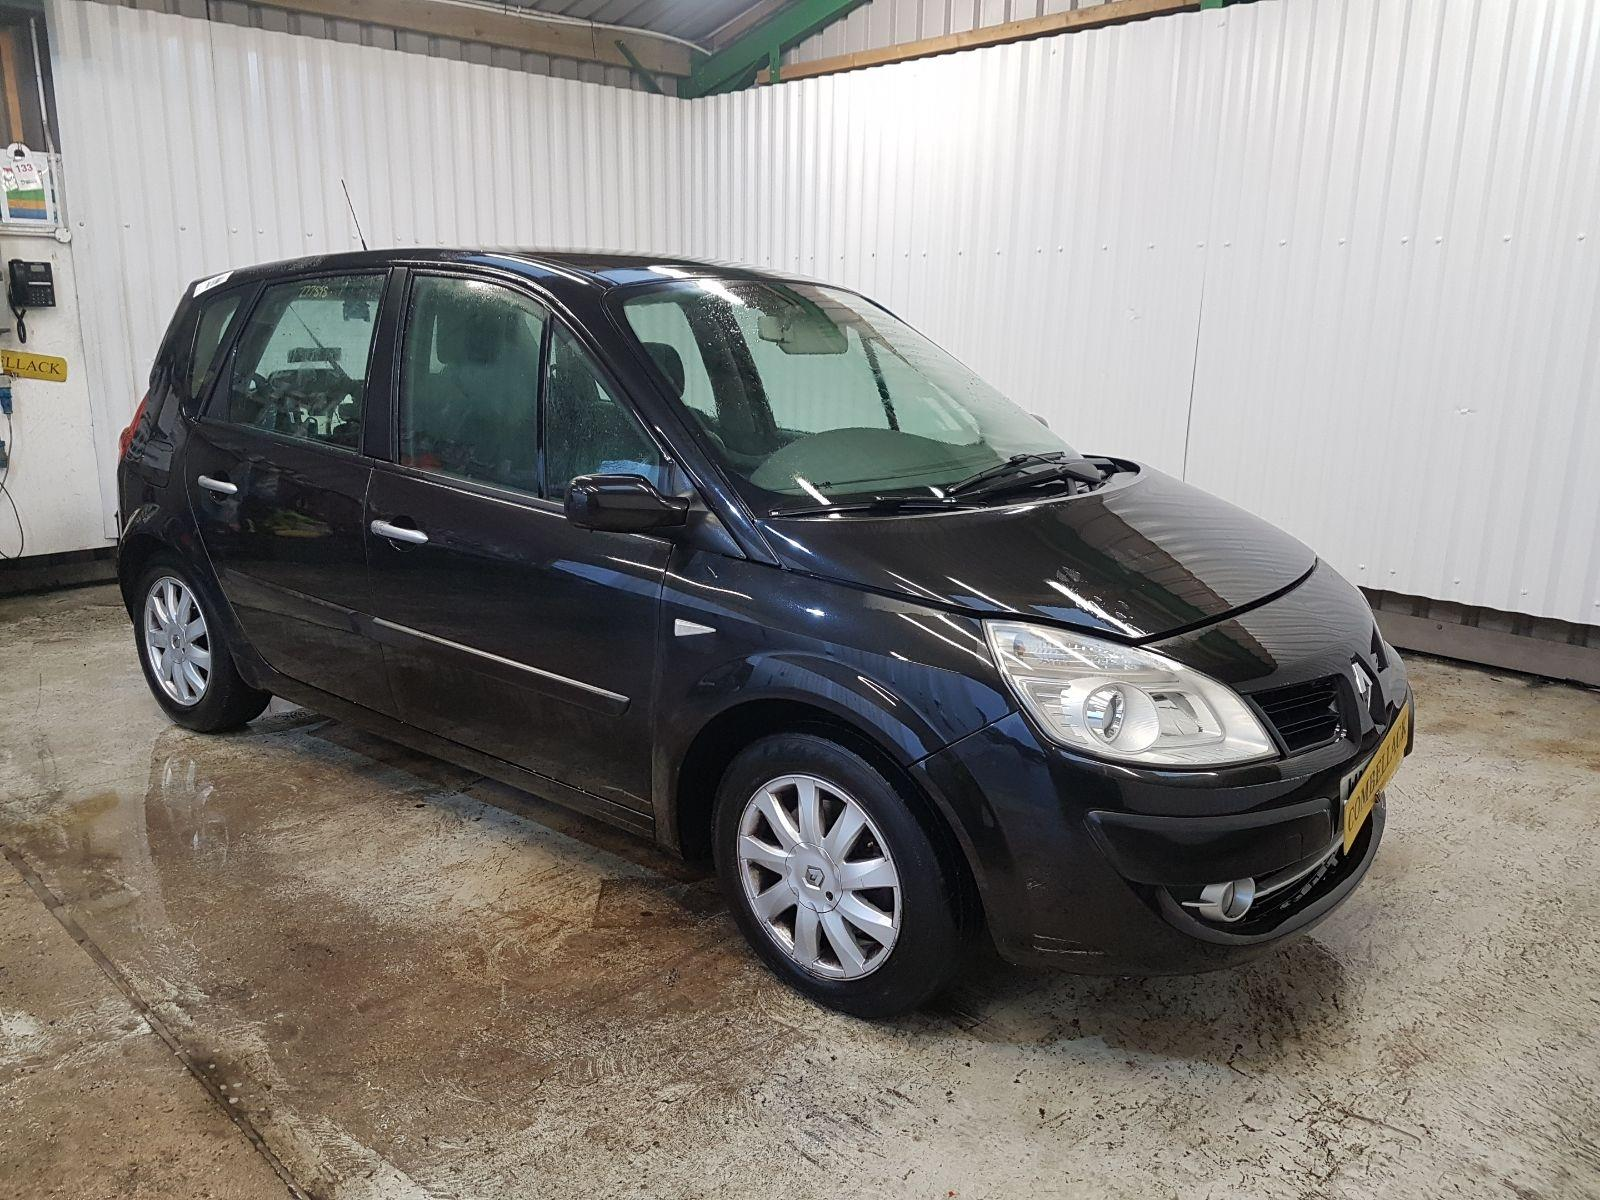 Renault Grand Scenic 2007 To 2009 Dynamique S dCi M.P.V.